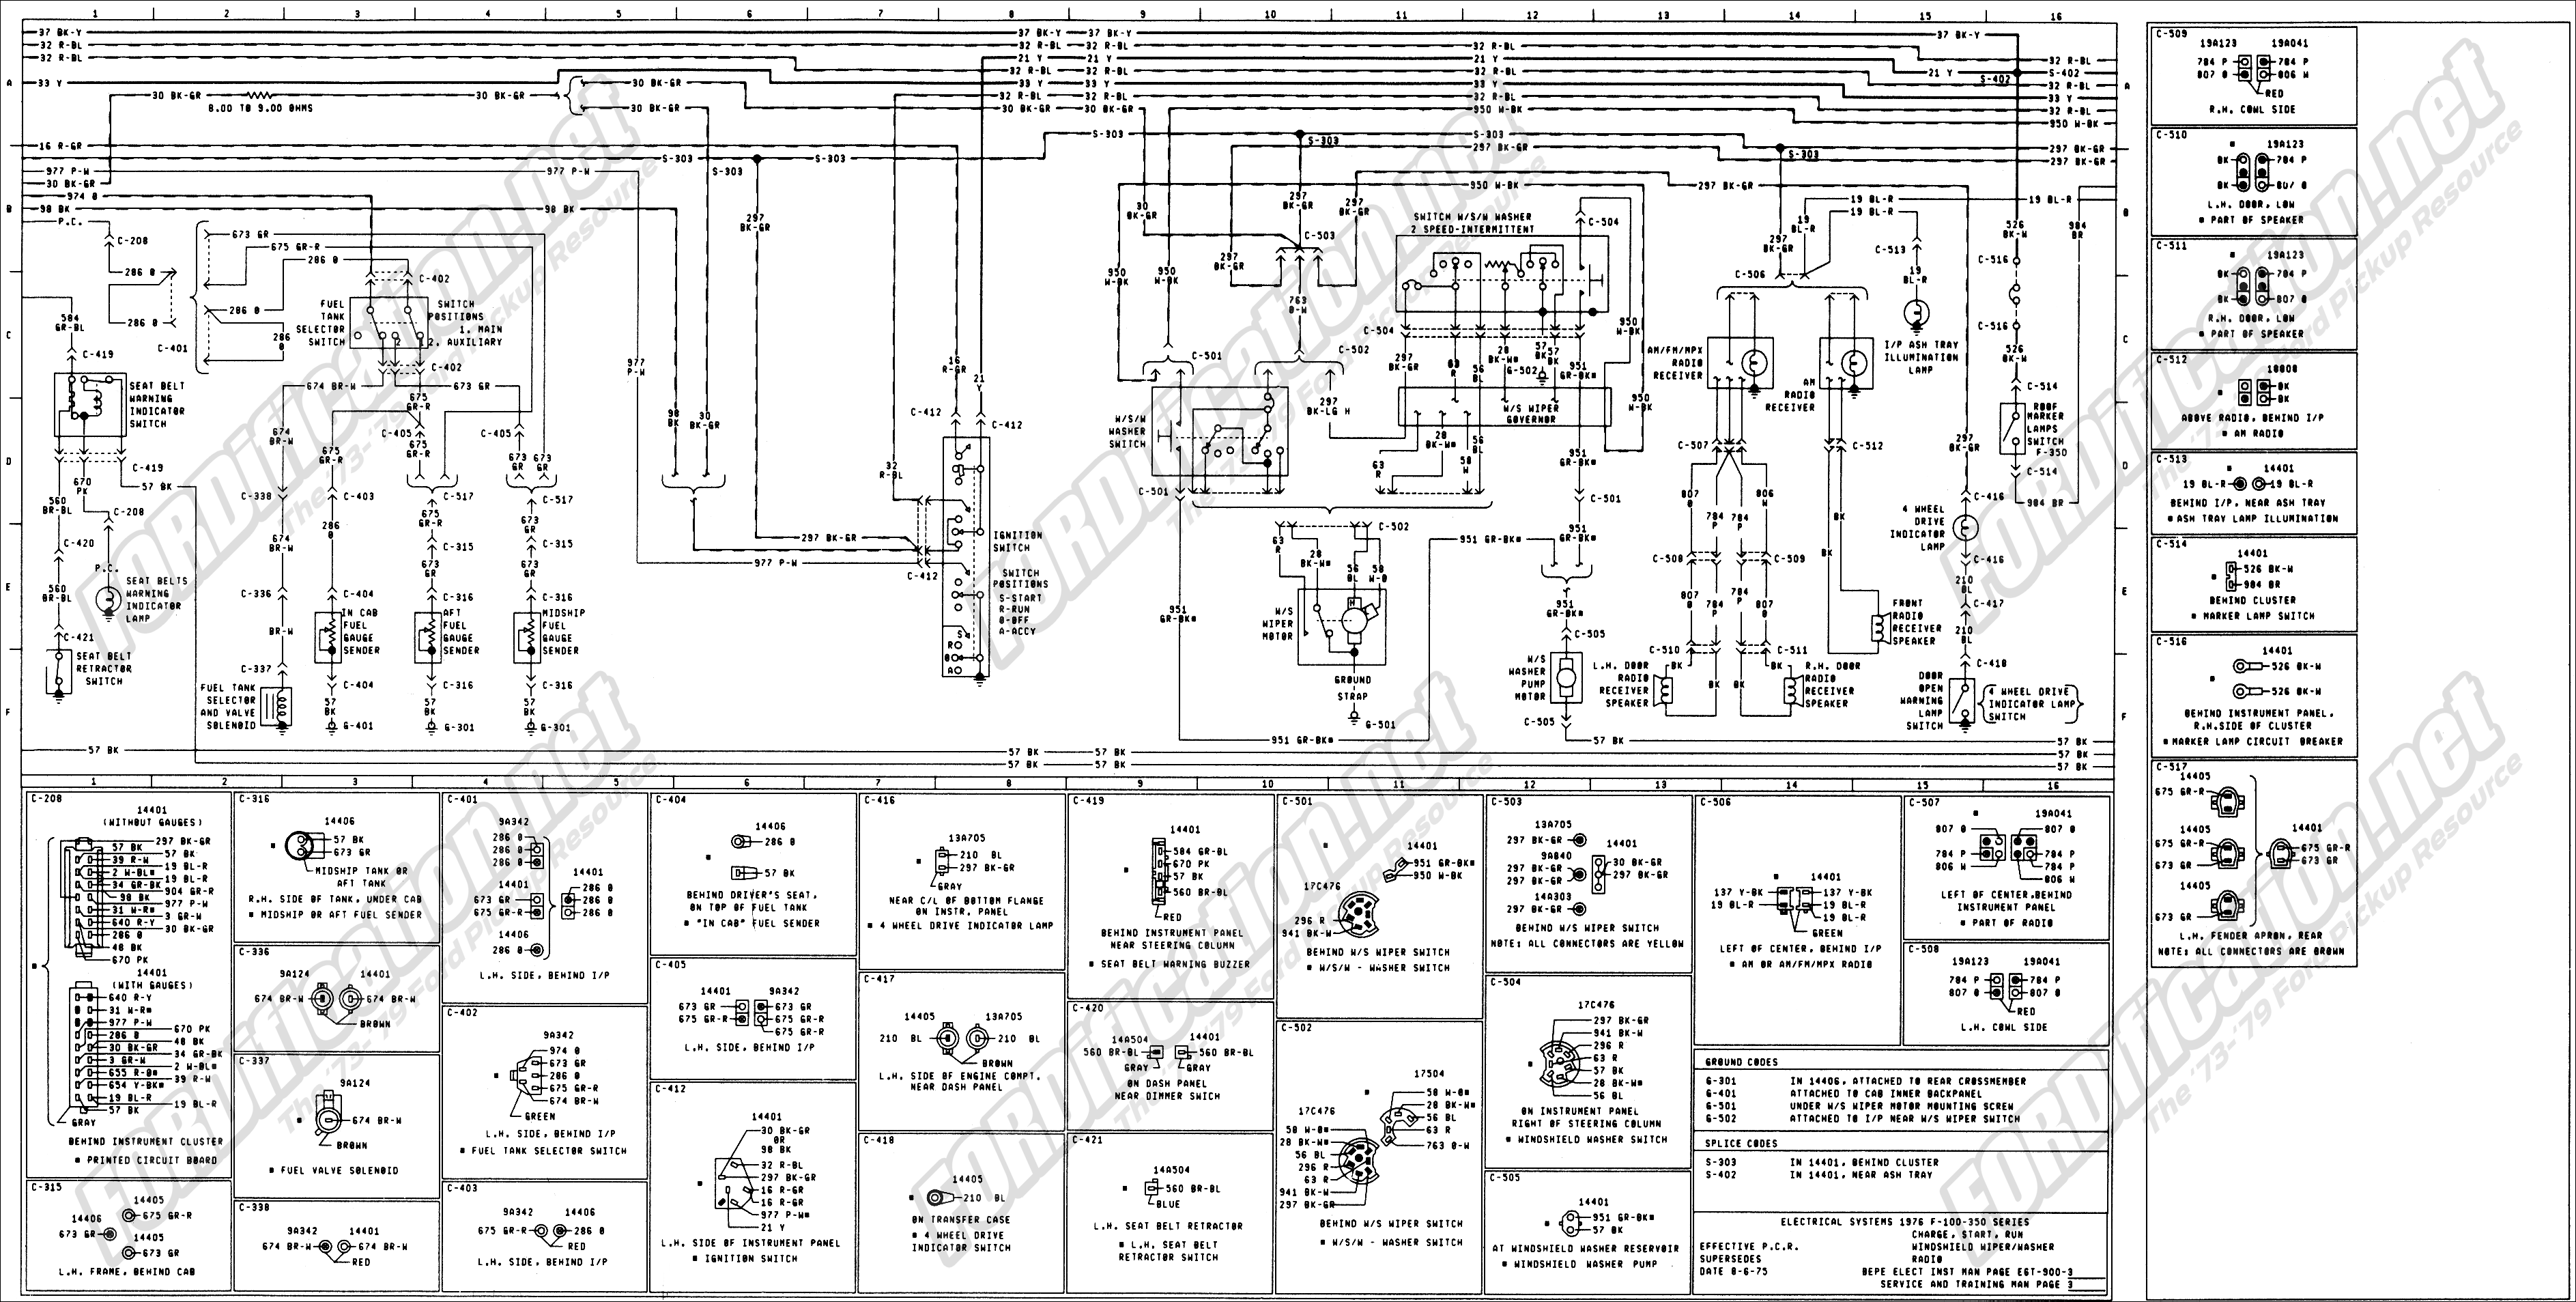 Wiring Diagram For Ford F250 Wiring Diagram Schematics 2012 Nissan Maxima  Wiring Diagram 2012 Ford F350 Wiring Diagrams